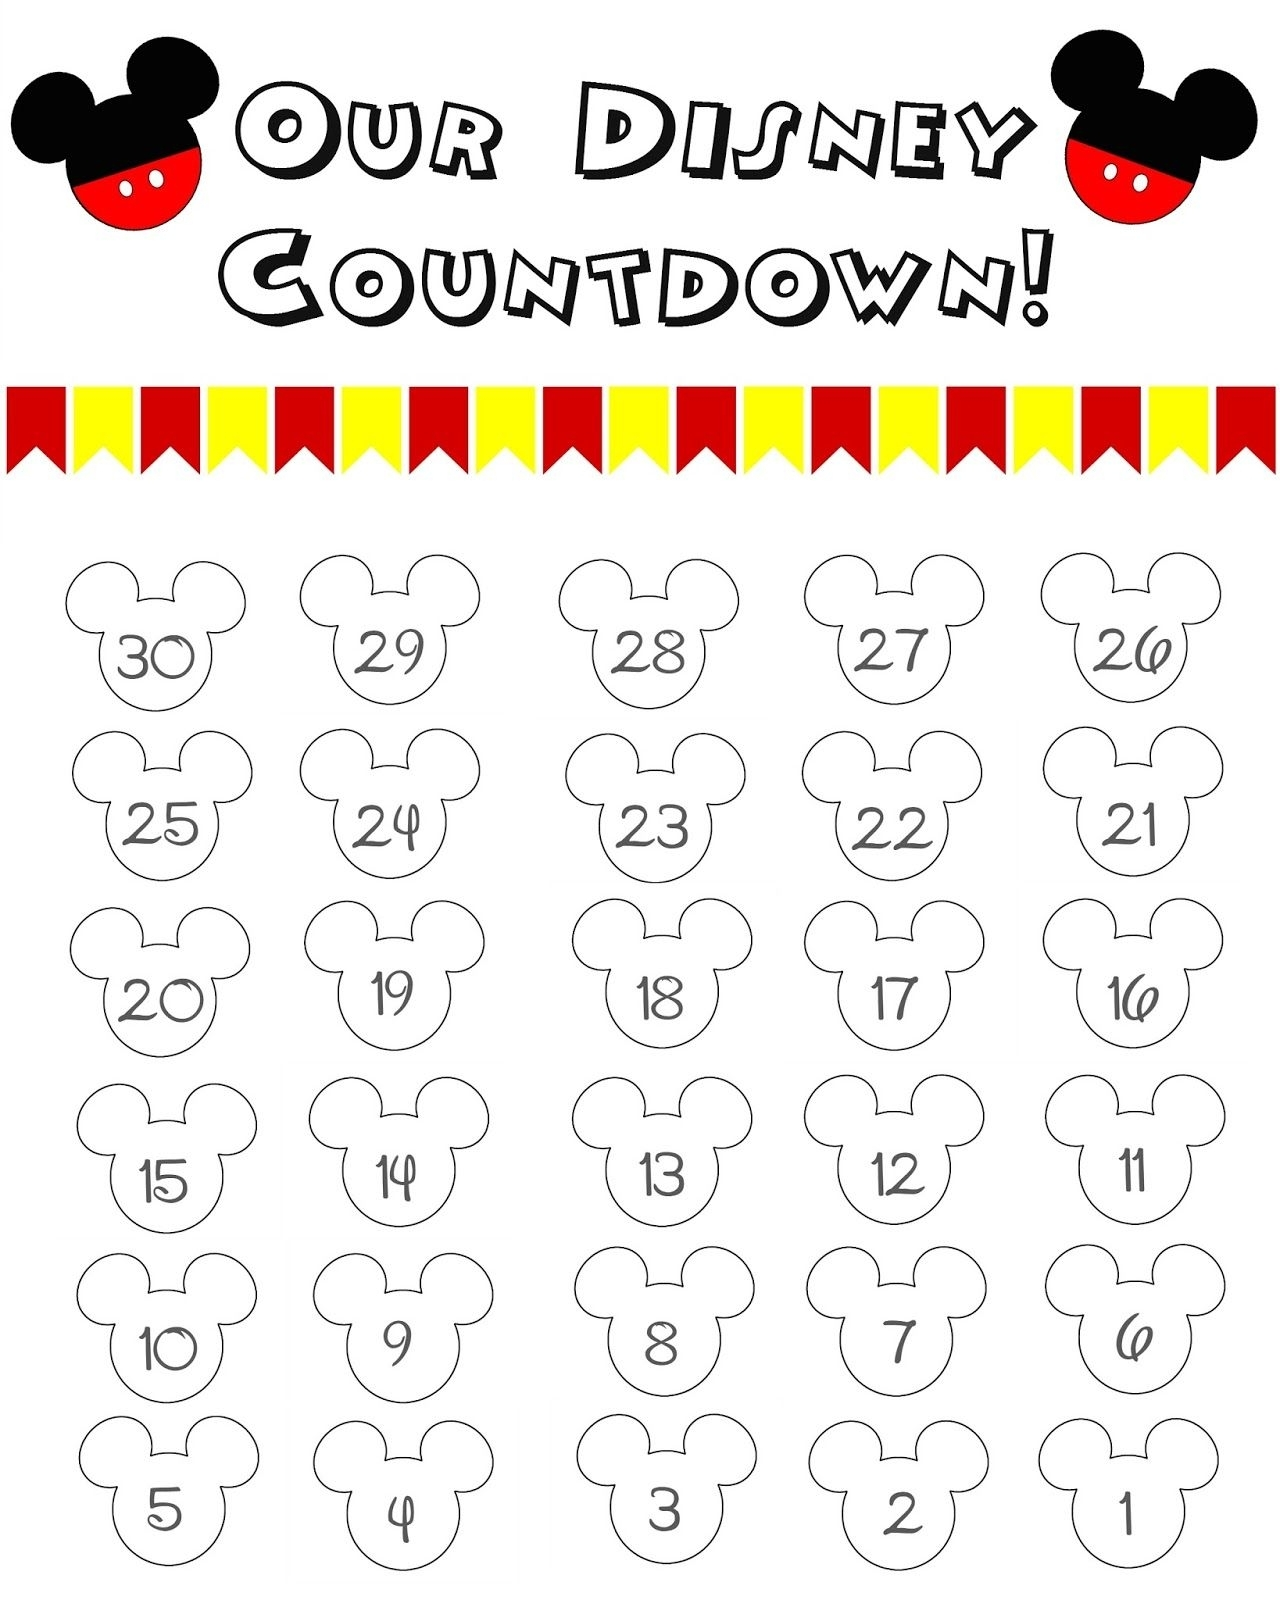 Disney World Countdown Calendar - Free Printable!! | Disney with regard to Disney Cruise Countdown Calendar Out Of Paper